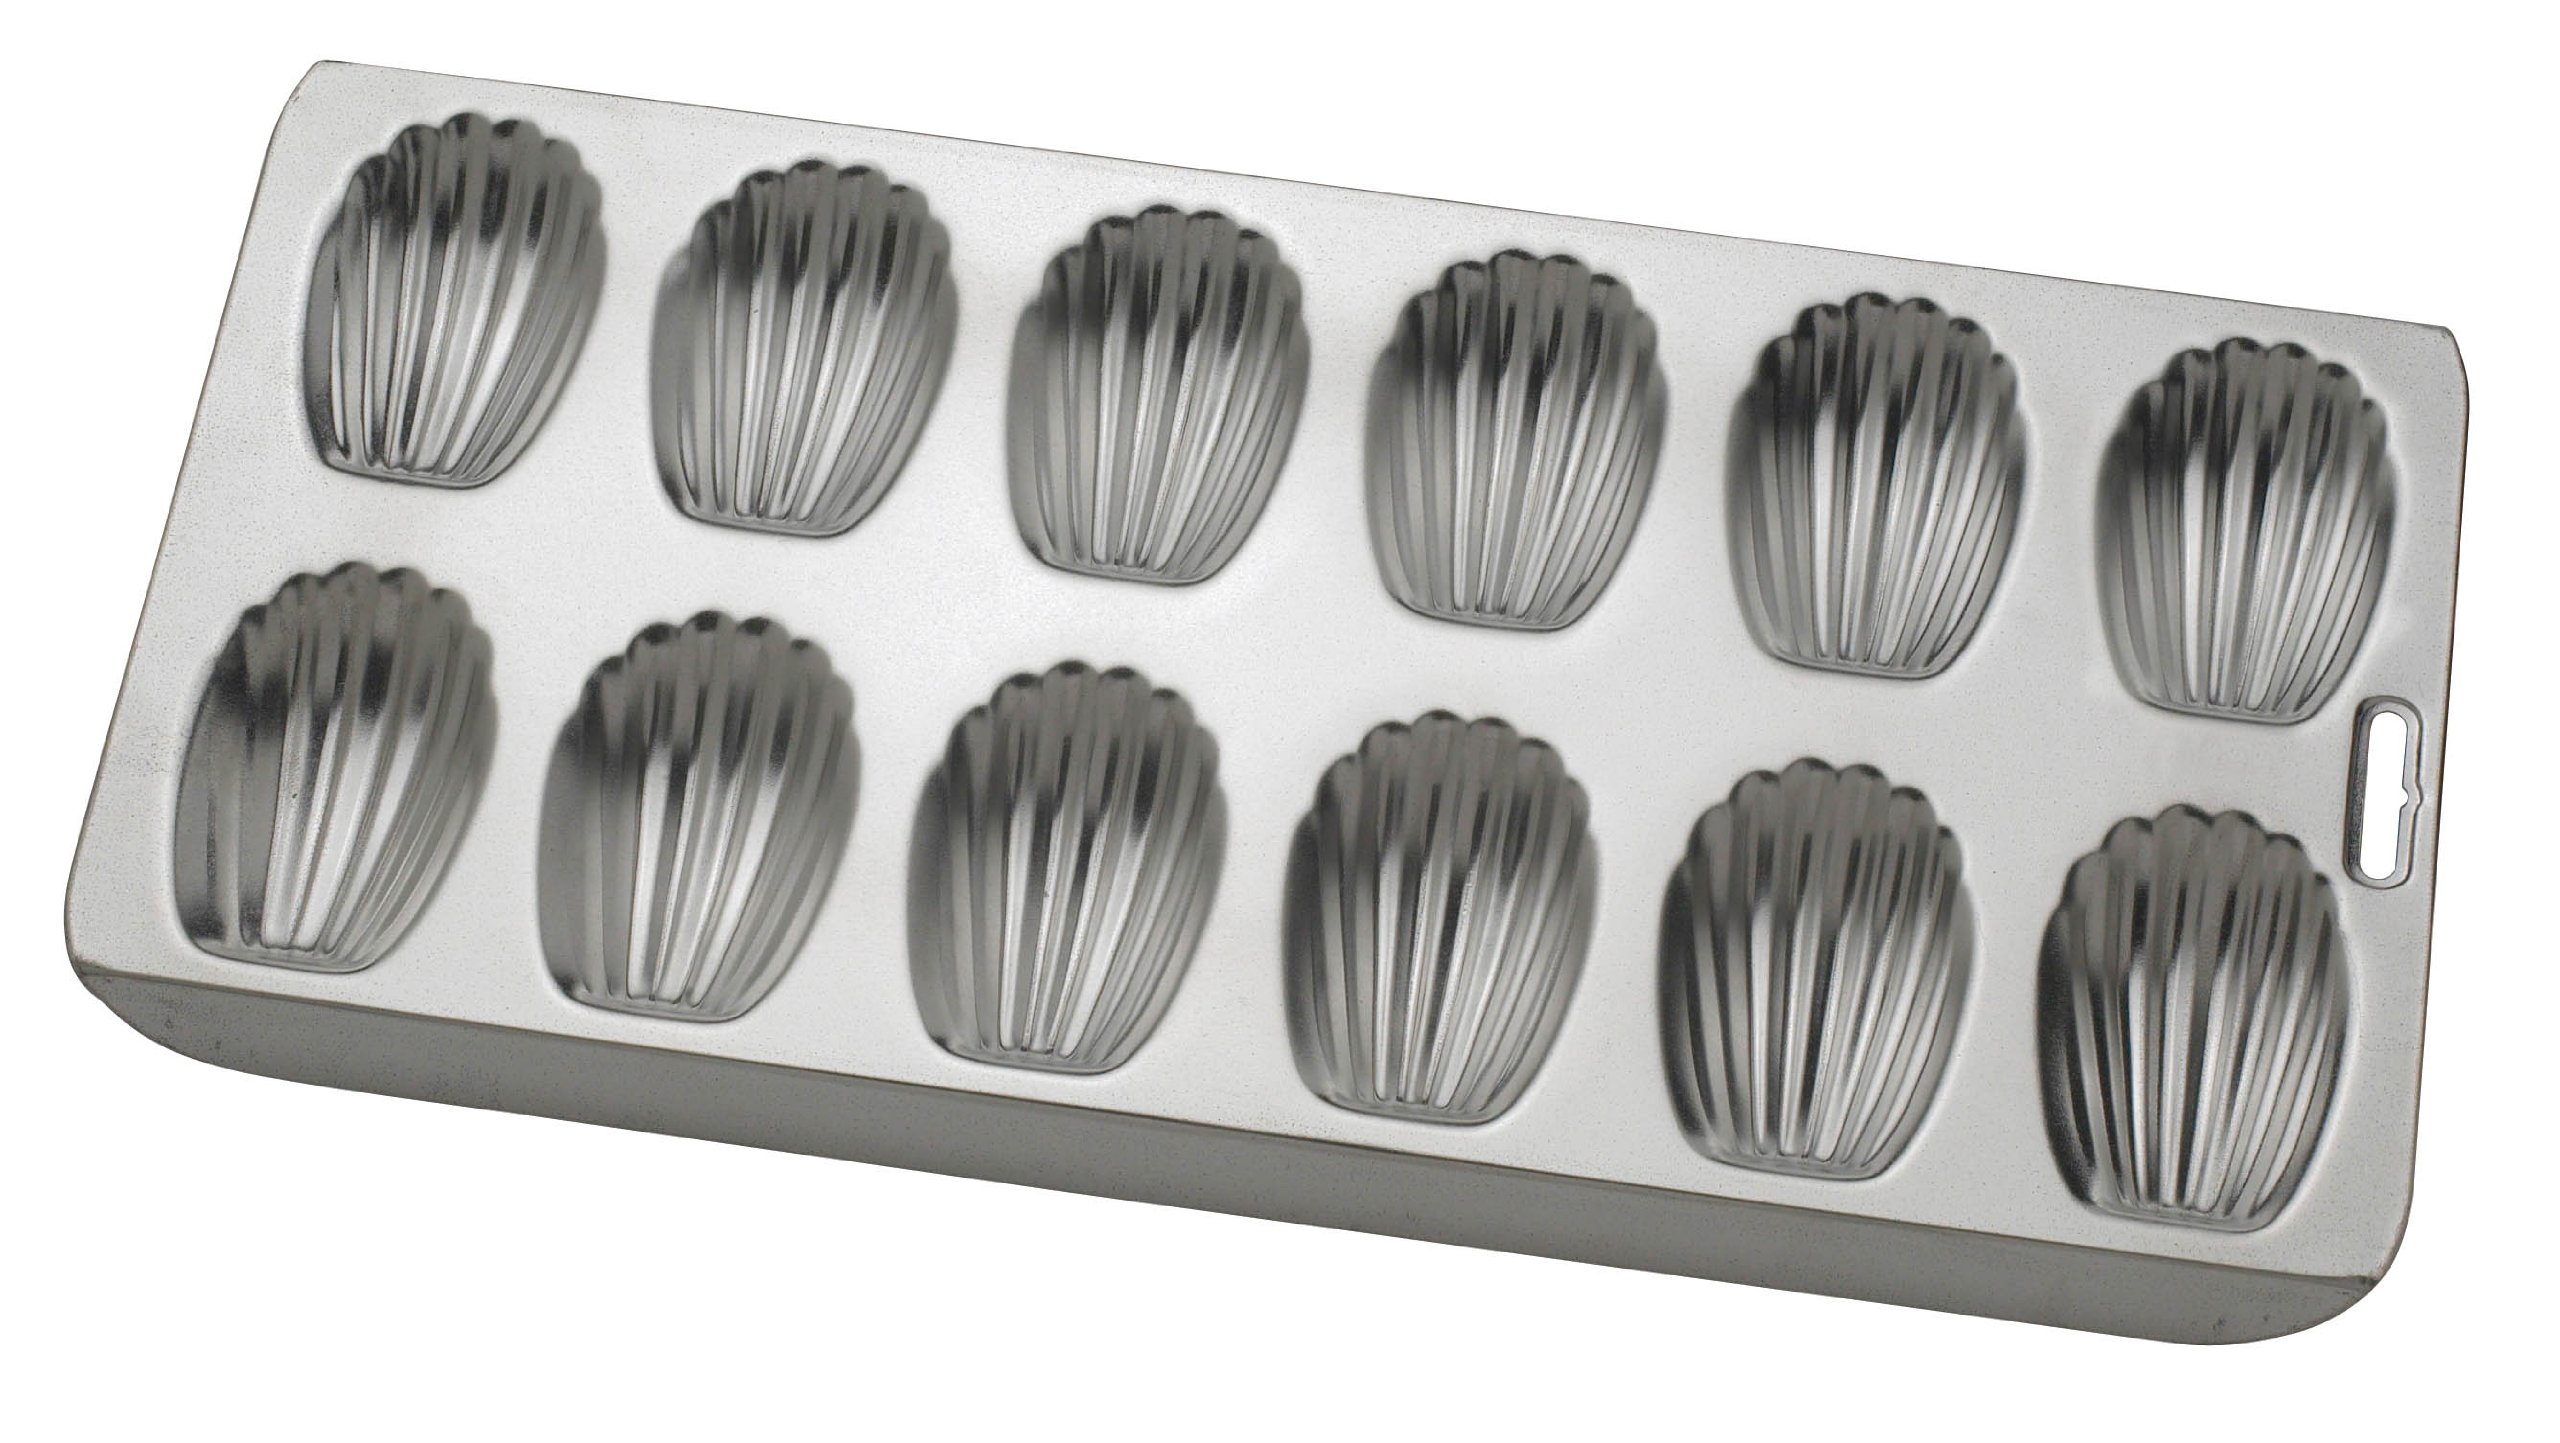 Mrs. Anderson's Baking Nonstick 12-Cup Madeleine Pan, Tinned Steel, 15.75-Inches x 8-Inches by Mrs. Anderson's Baking